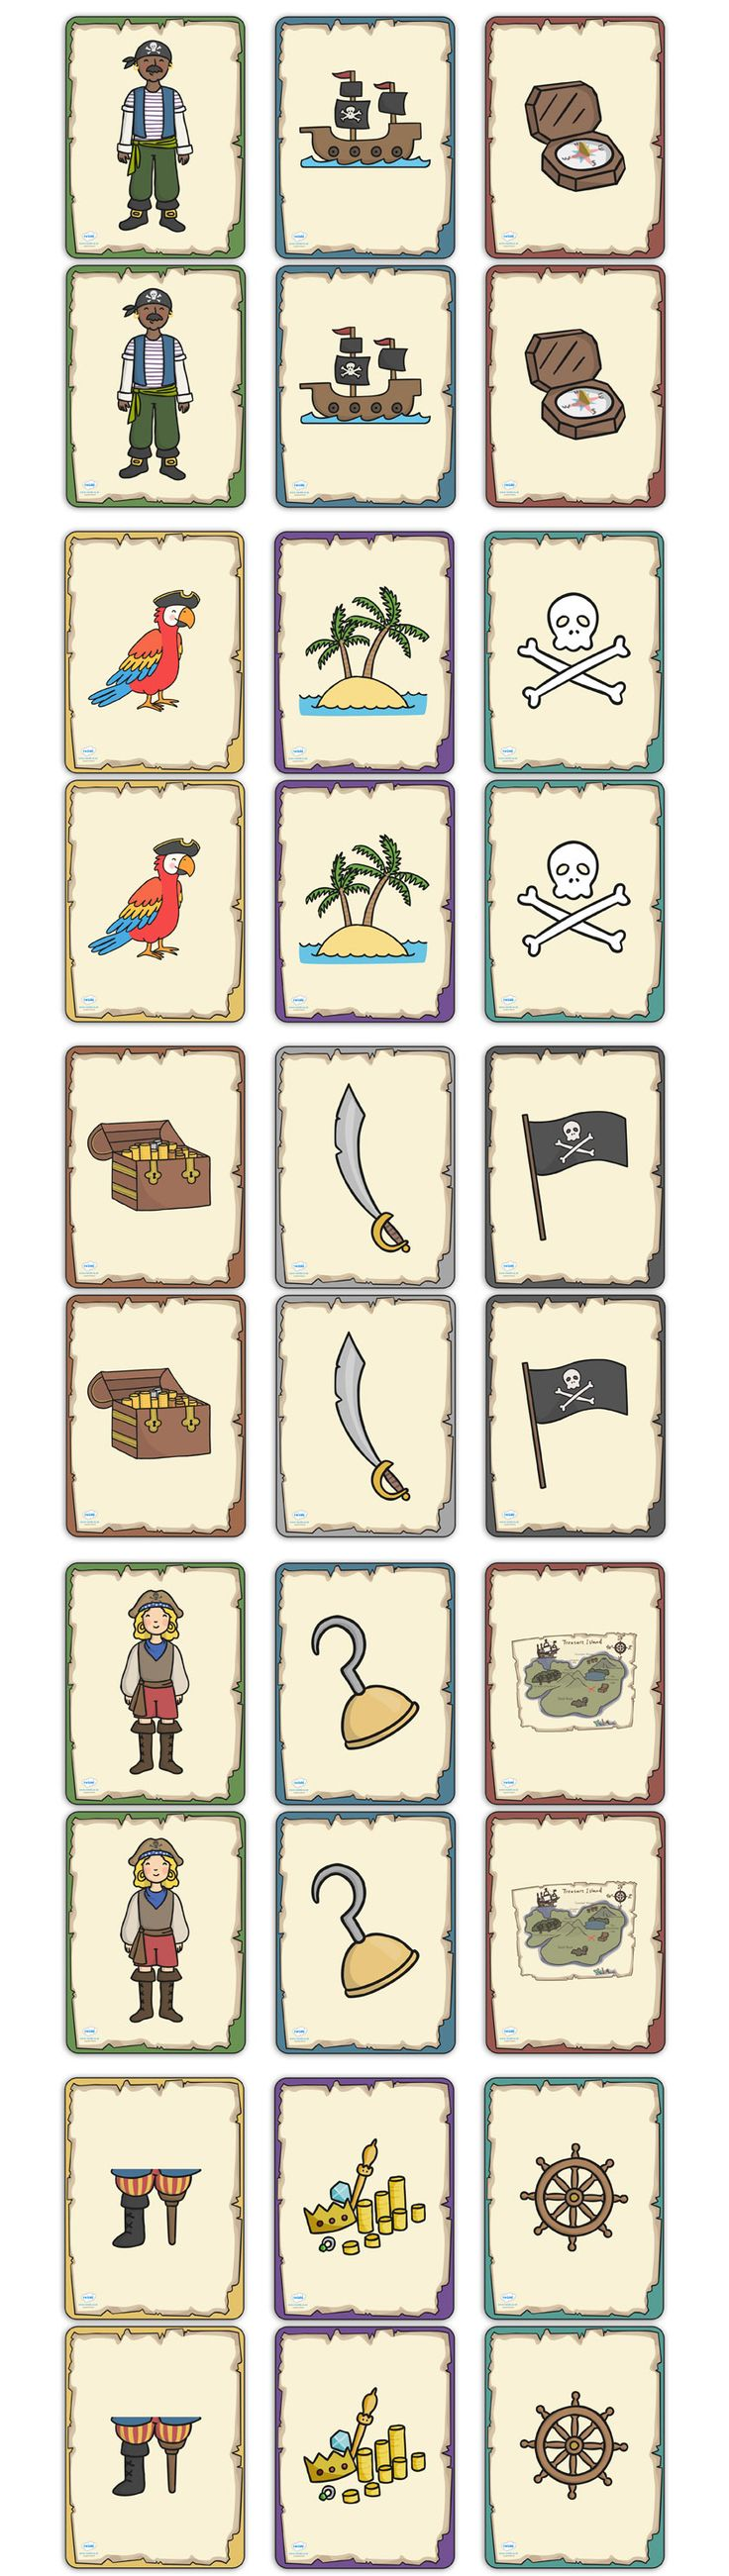 Twinkl Resources Pirate Themed Snap Cards Classroom printables for Pre-School, Kindergarten, Elementary School and beyond! Cards, Pirates, Activities, Games